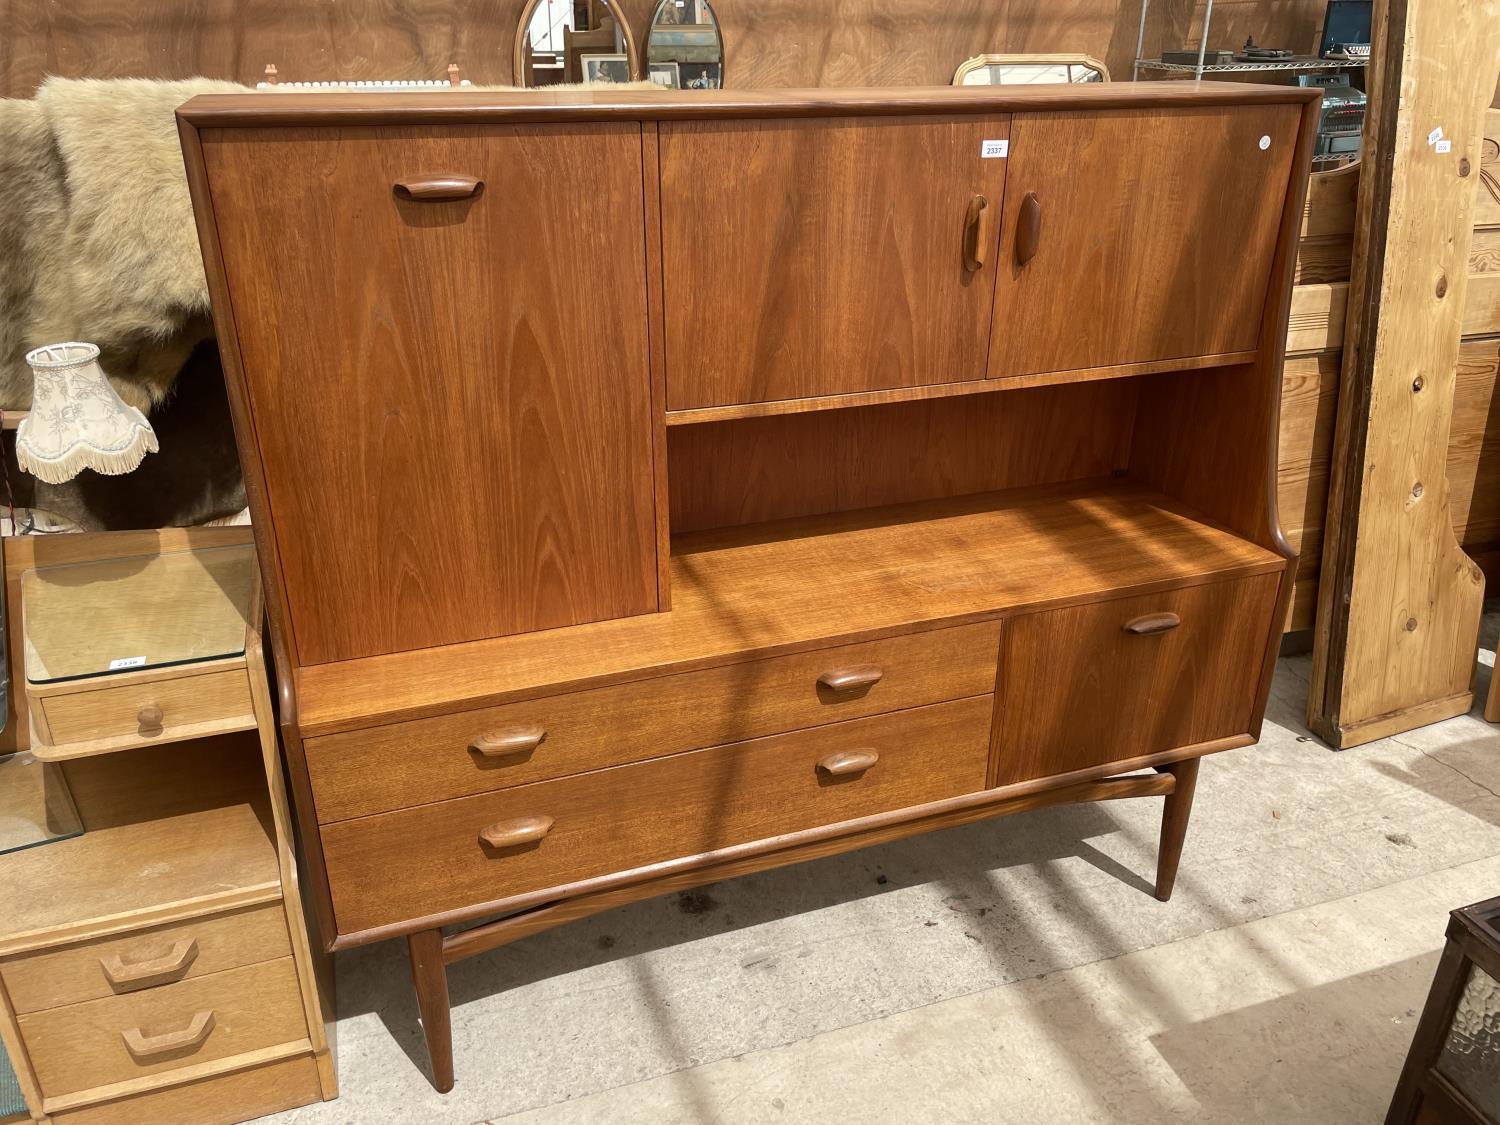 A G PLAN RETRO TEAK SIDEBOARD WITH UPPER CABINET